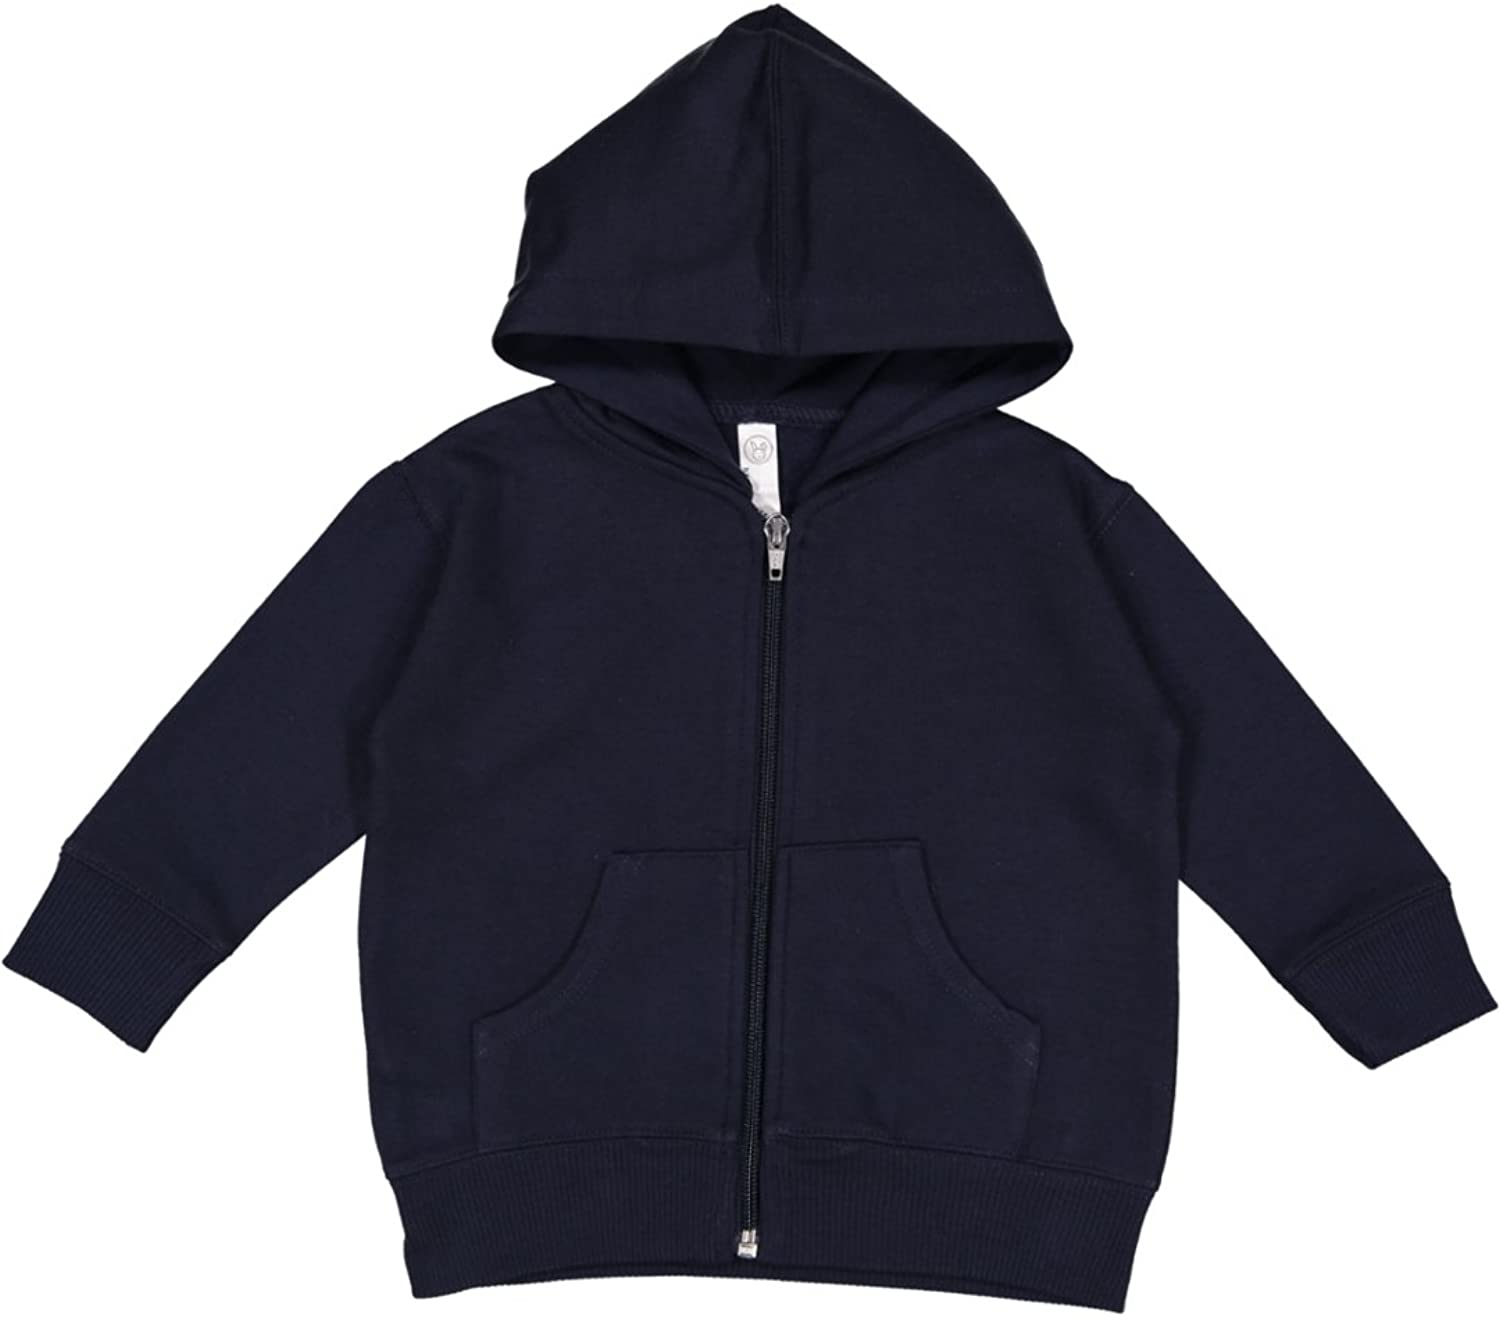 Rabbit Skins Infant Fleece Long Sleeve Full Zip Hooded Sweatshirt with Pouch Pockets, Navy, 12 Months